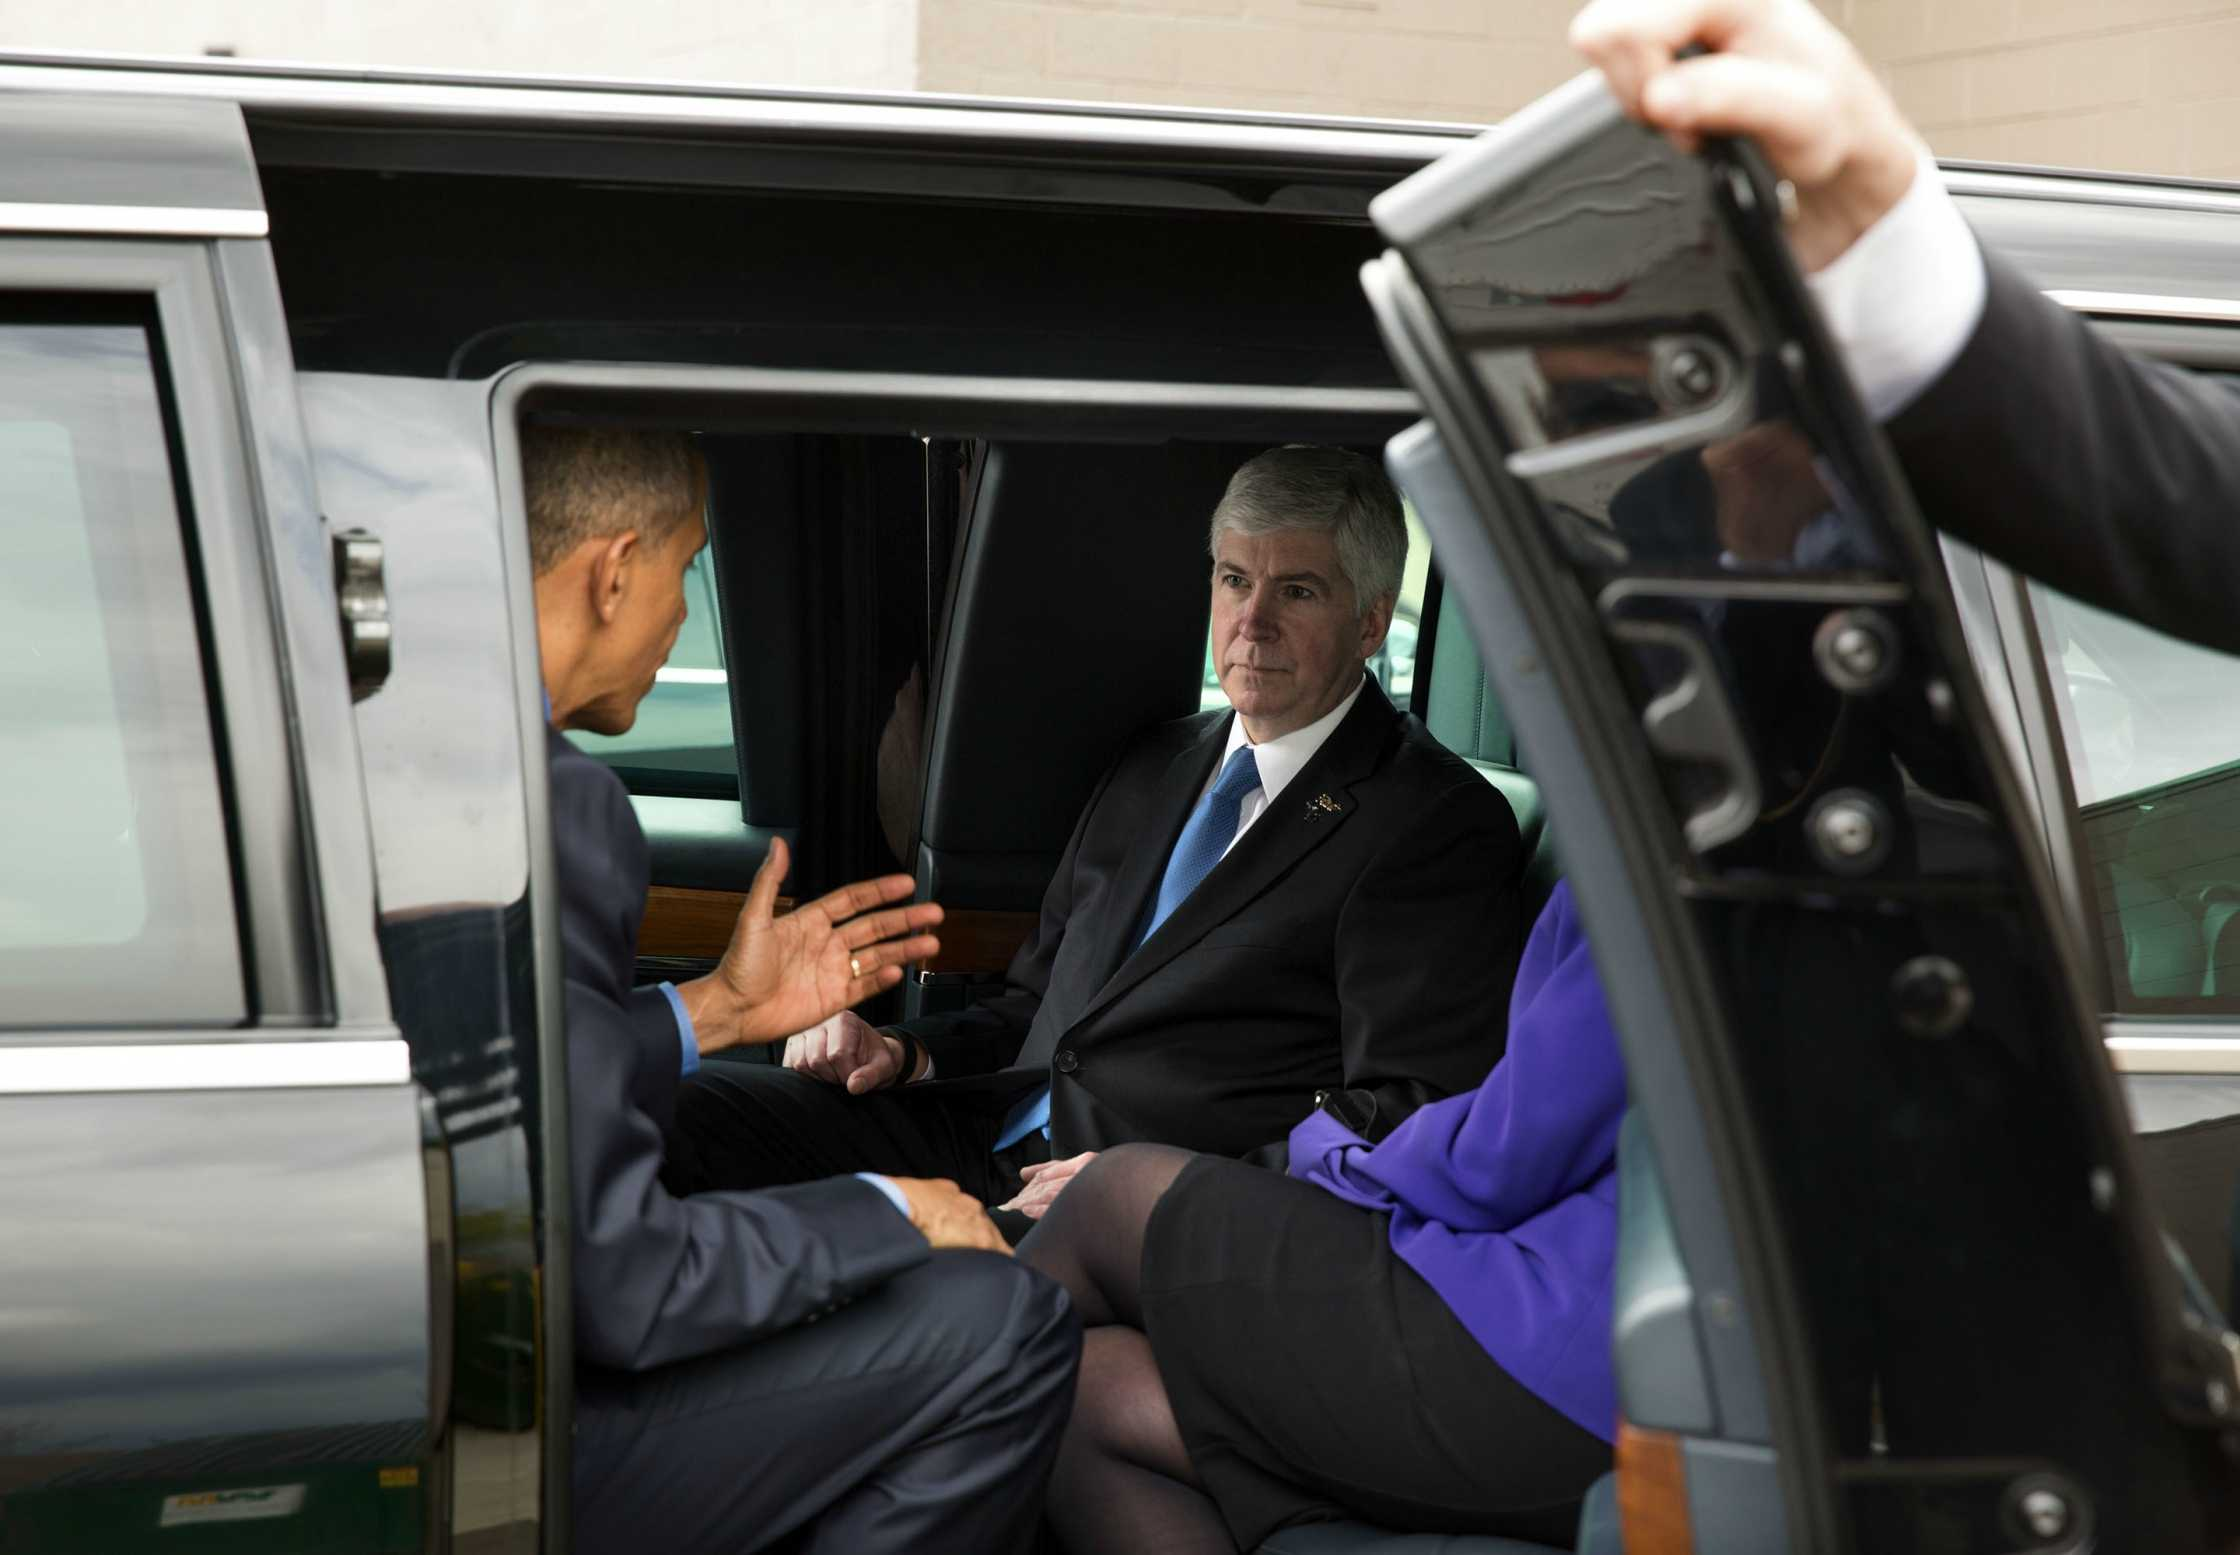 President Barack Obama talks with Gov. Rick Snyder as they arrived at Food Bank of Eastern Michigan in Flint on May 4, 2016. The governor rode in the motorcade with the President from the airport.